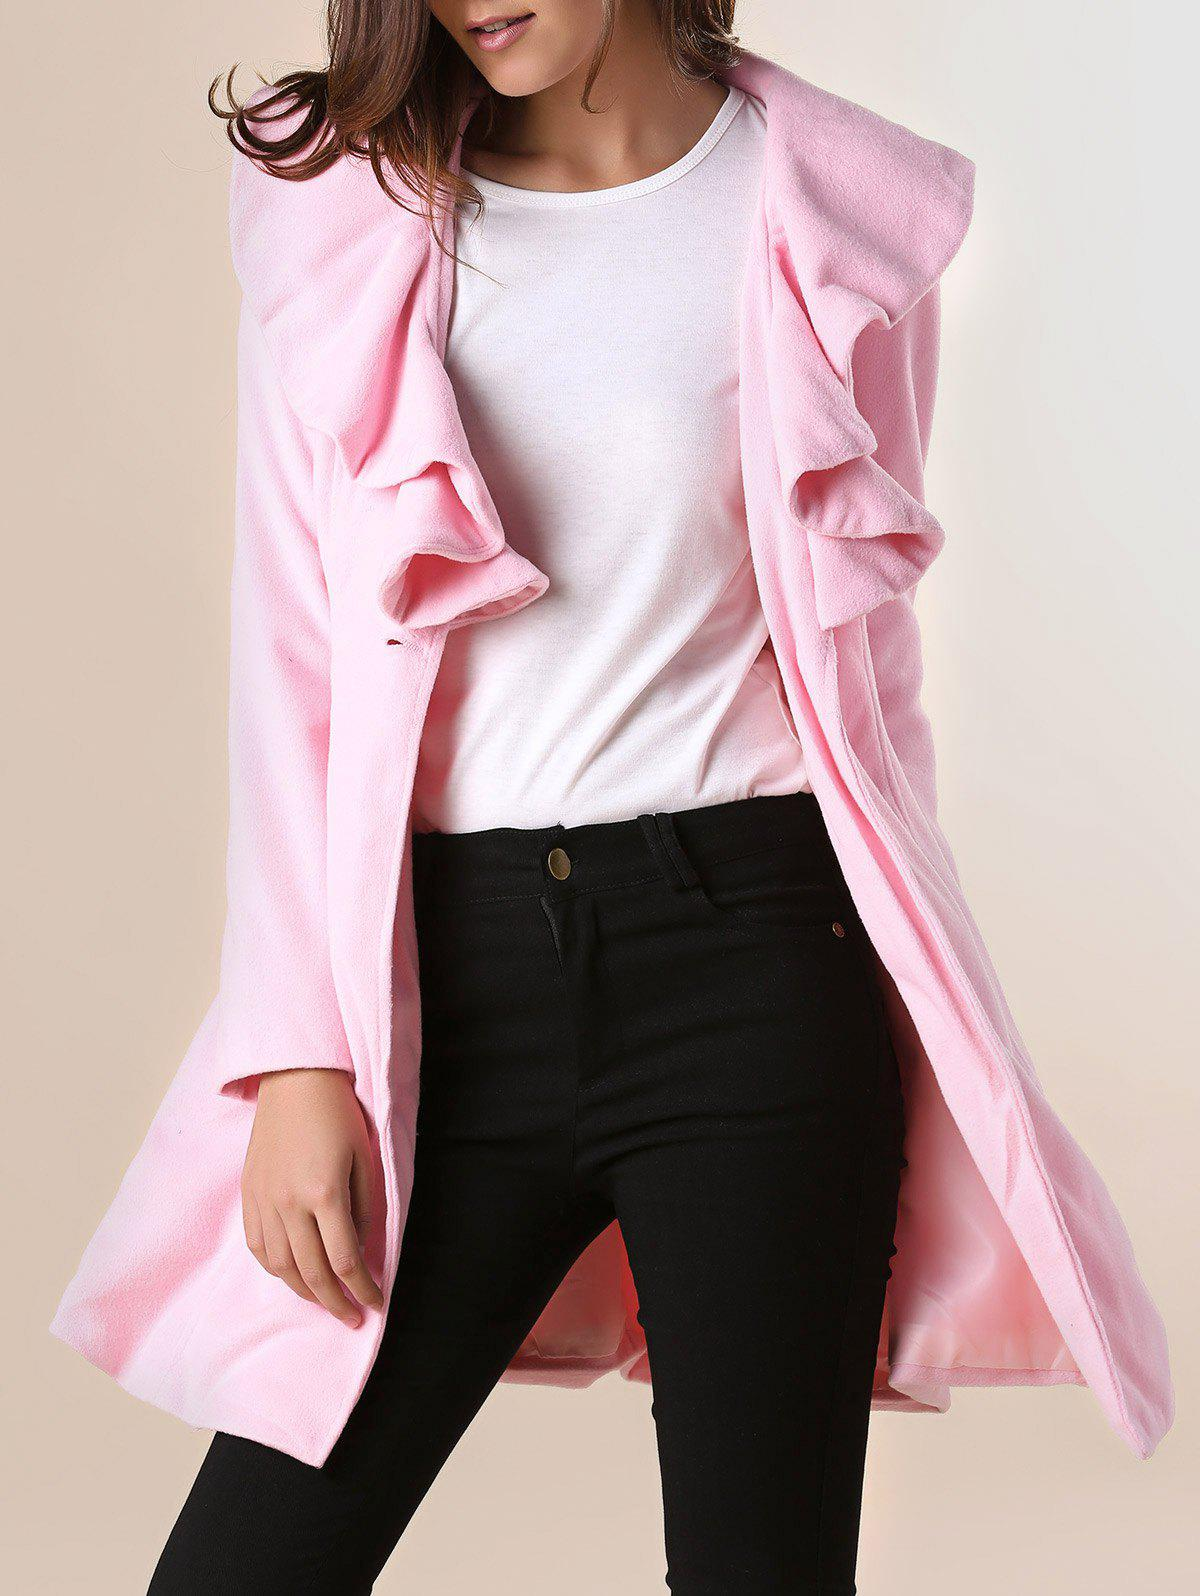 Unique Long Sleeves Ruffles Lapel Beam Waist Long Sections Stylish Women's Trench Coat